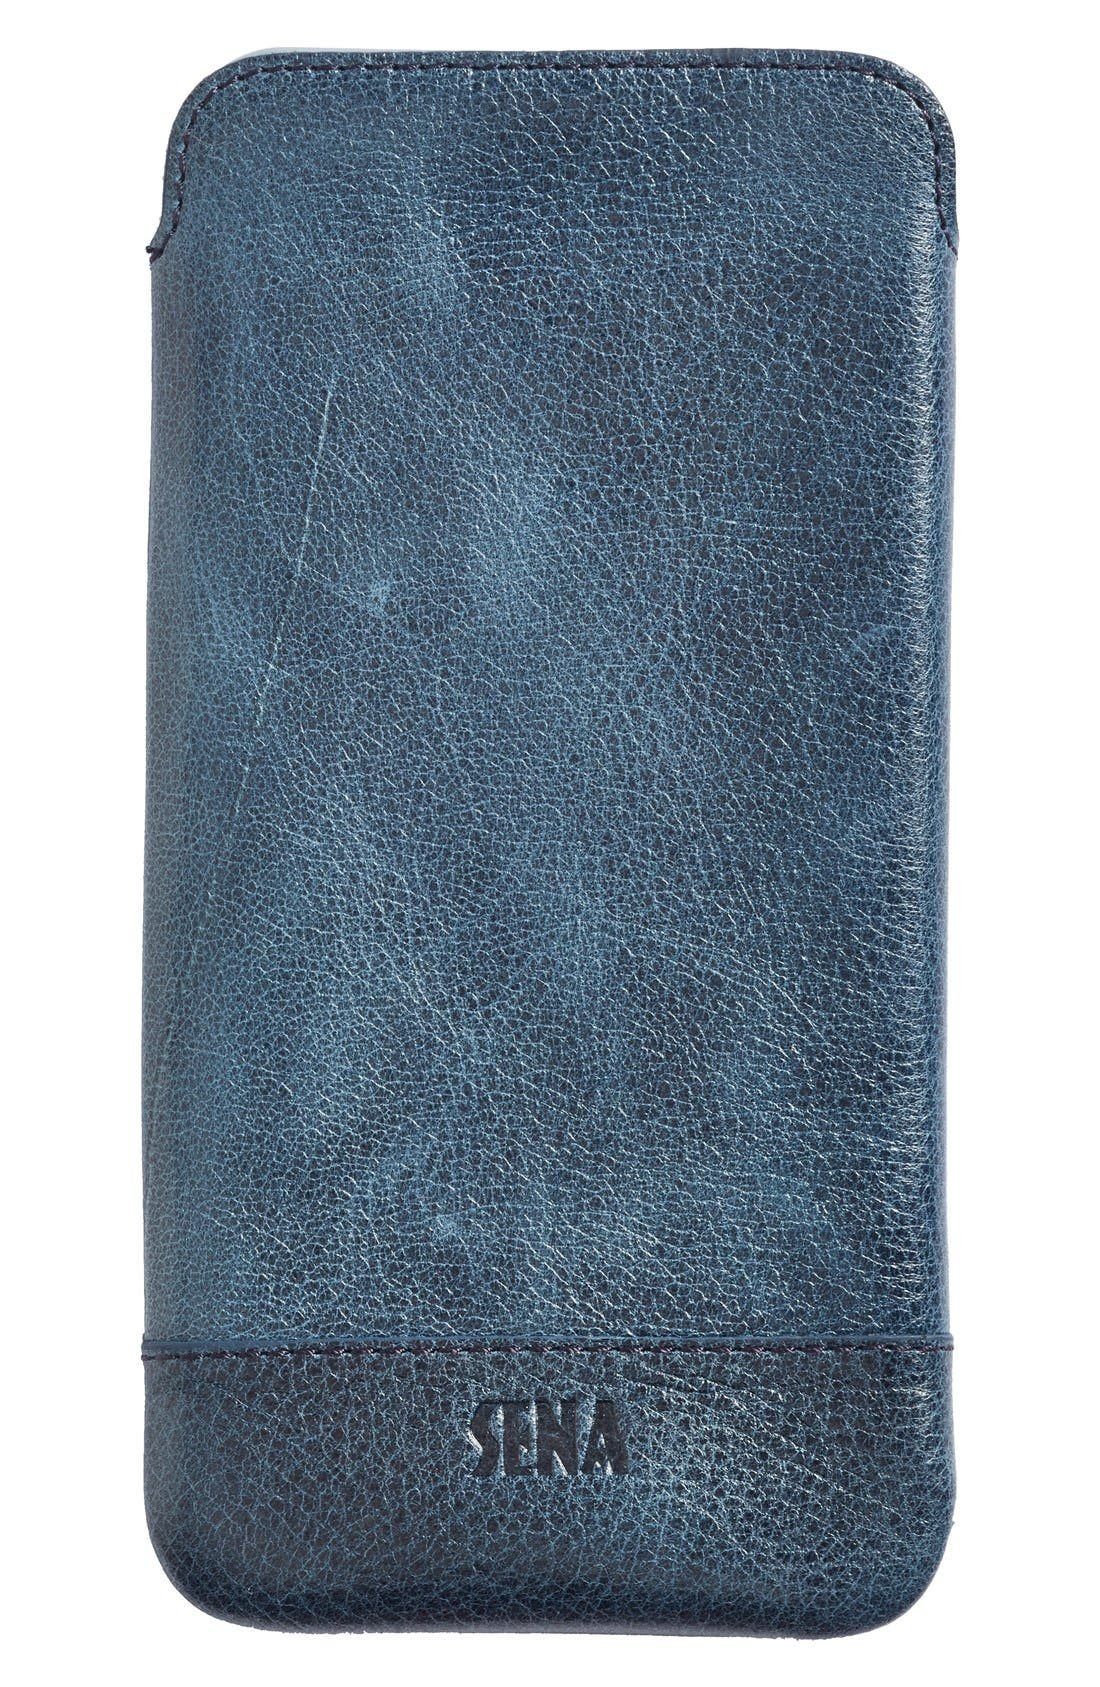 Main Image - Sena Heritage - Ultra Slim Leather iPhone 6 Plus/6s Plus Pouch